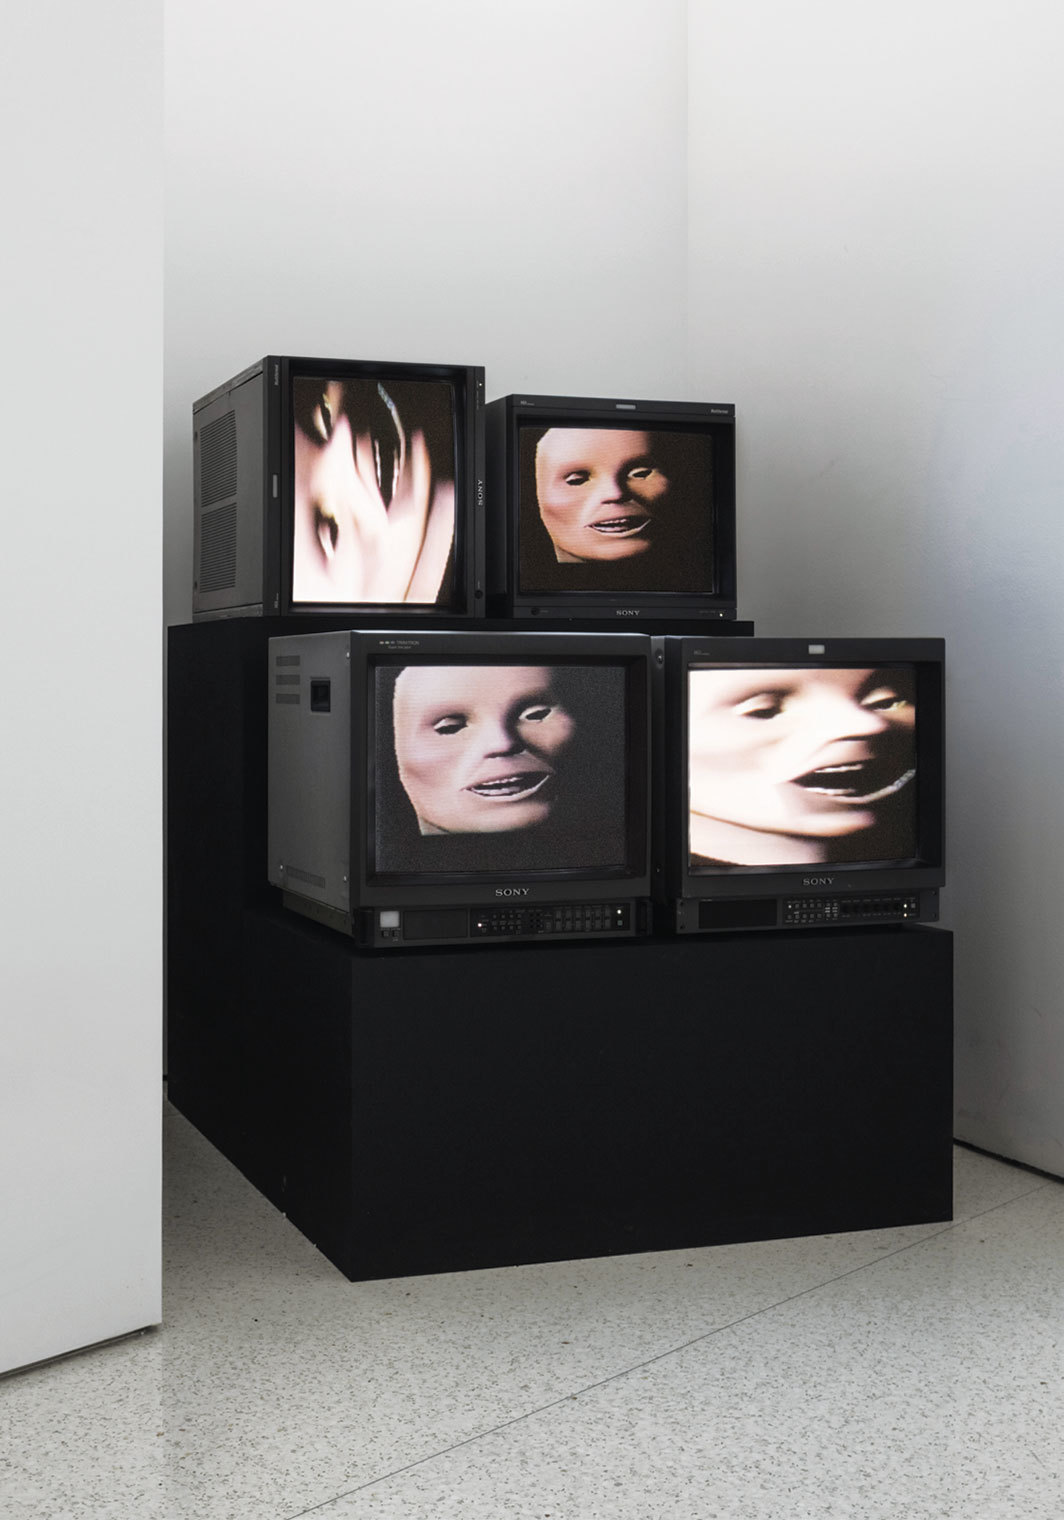 Gretchen Bender, Wild Dead I, II, III (Danceteria Version), 1984, two-channel video, CRT monitors, color, sound, 6 minutes 50 seconds. Soundtrack by Stuart Argabright and Michael Diekmann. © The Gretchen Bender Estate and OSMOS